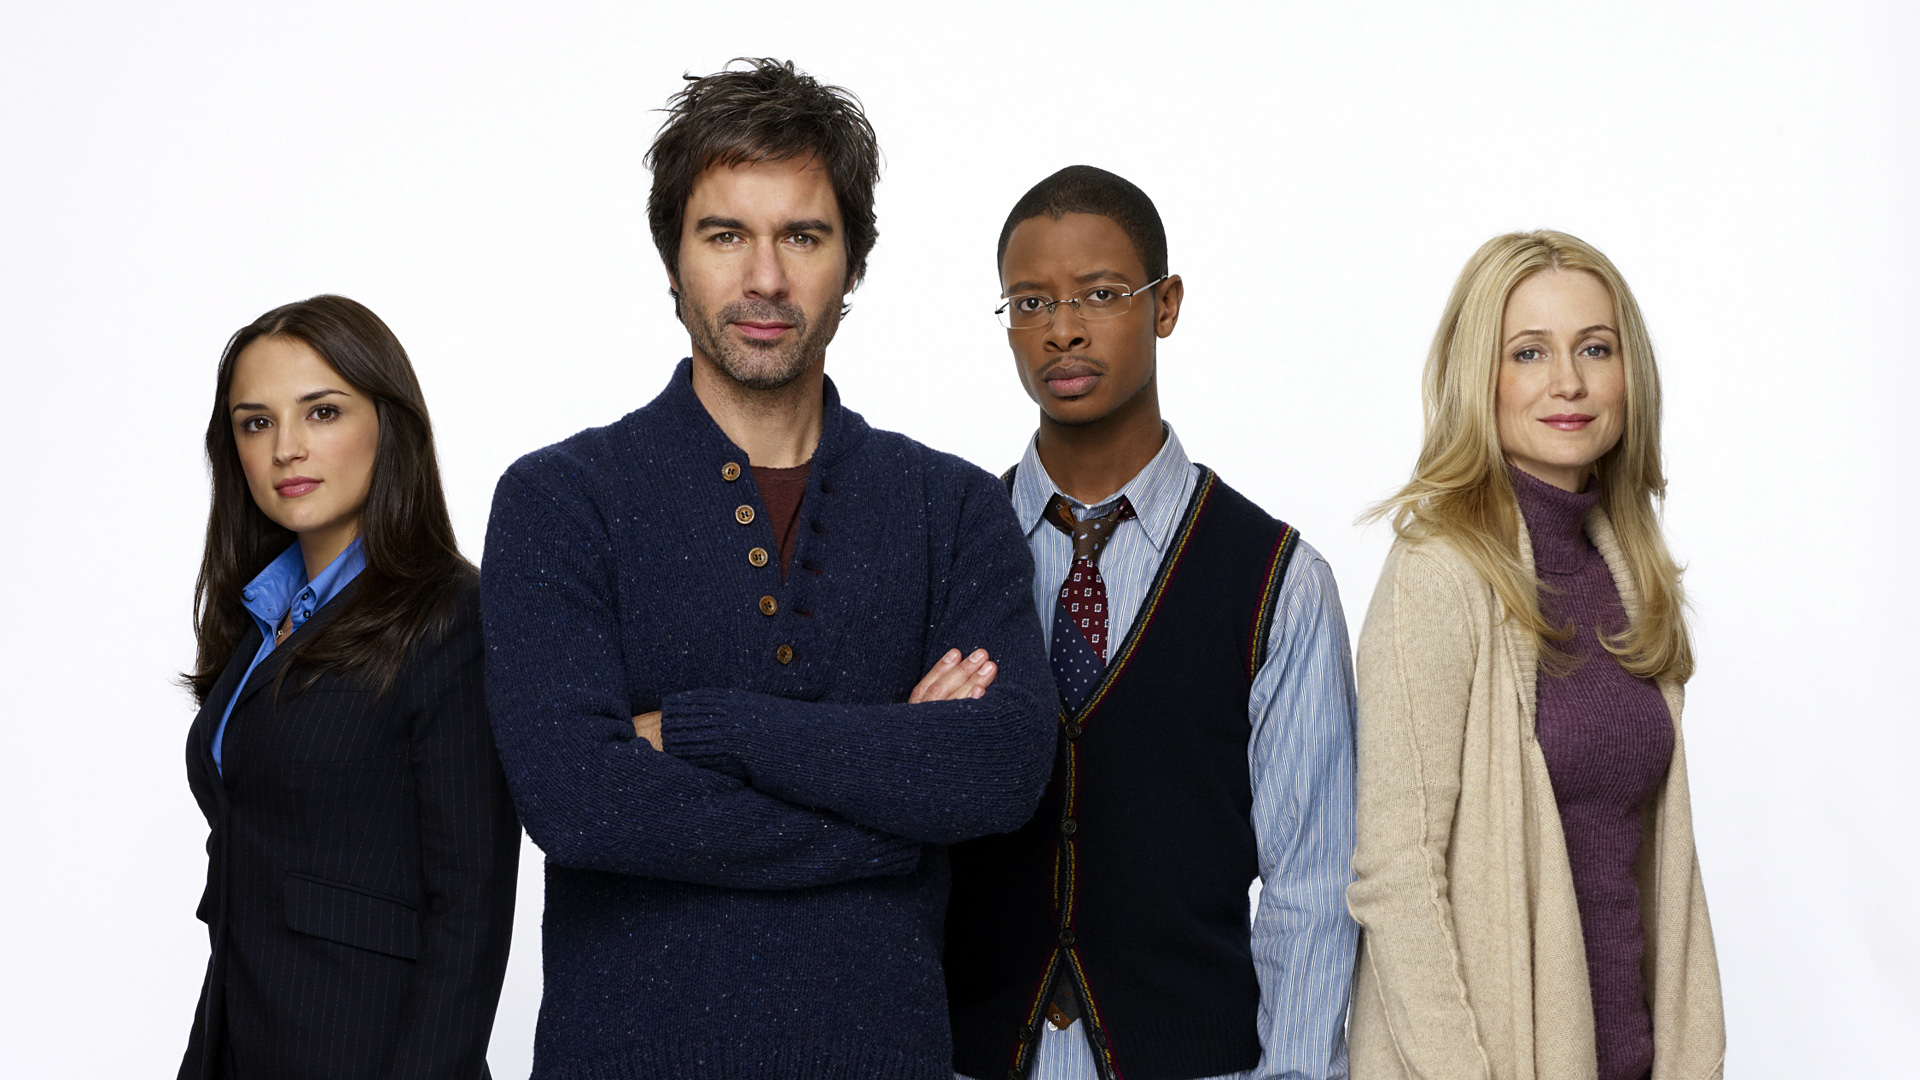 No fourth season for Perception